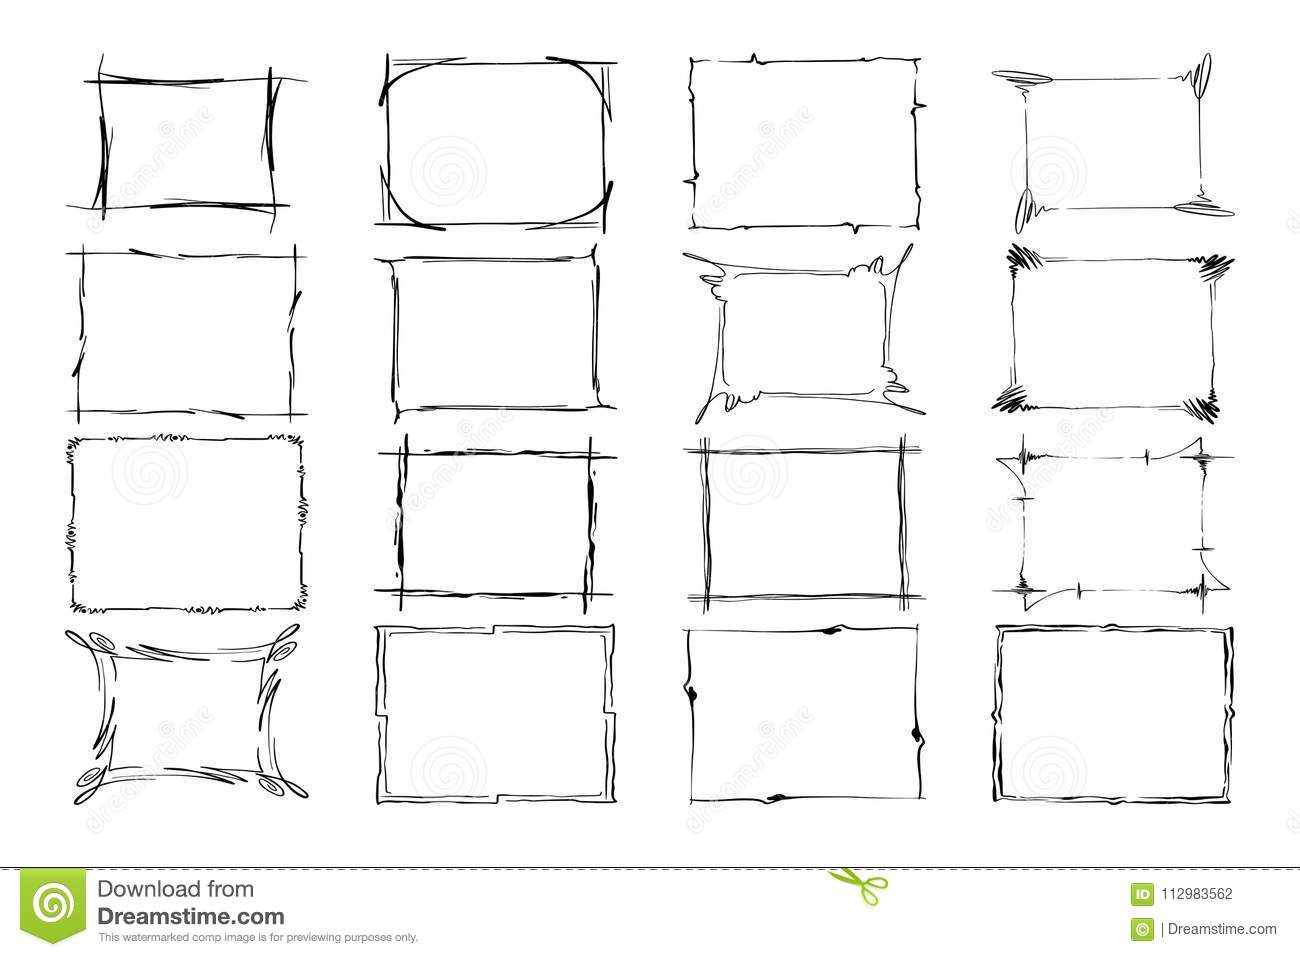 Set of Vector Frames. Rectangles for image. Hand drawn black highlighting borders isolated on the white background